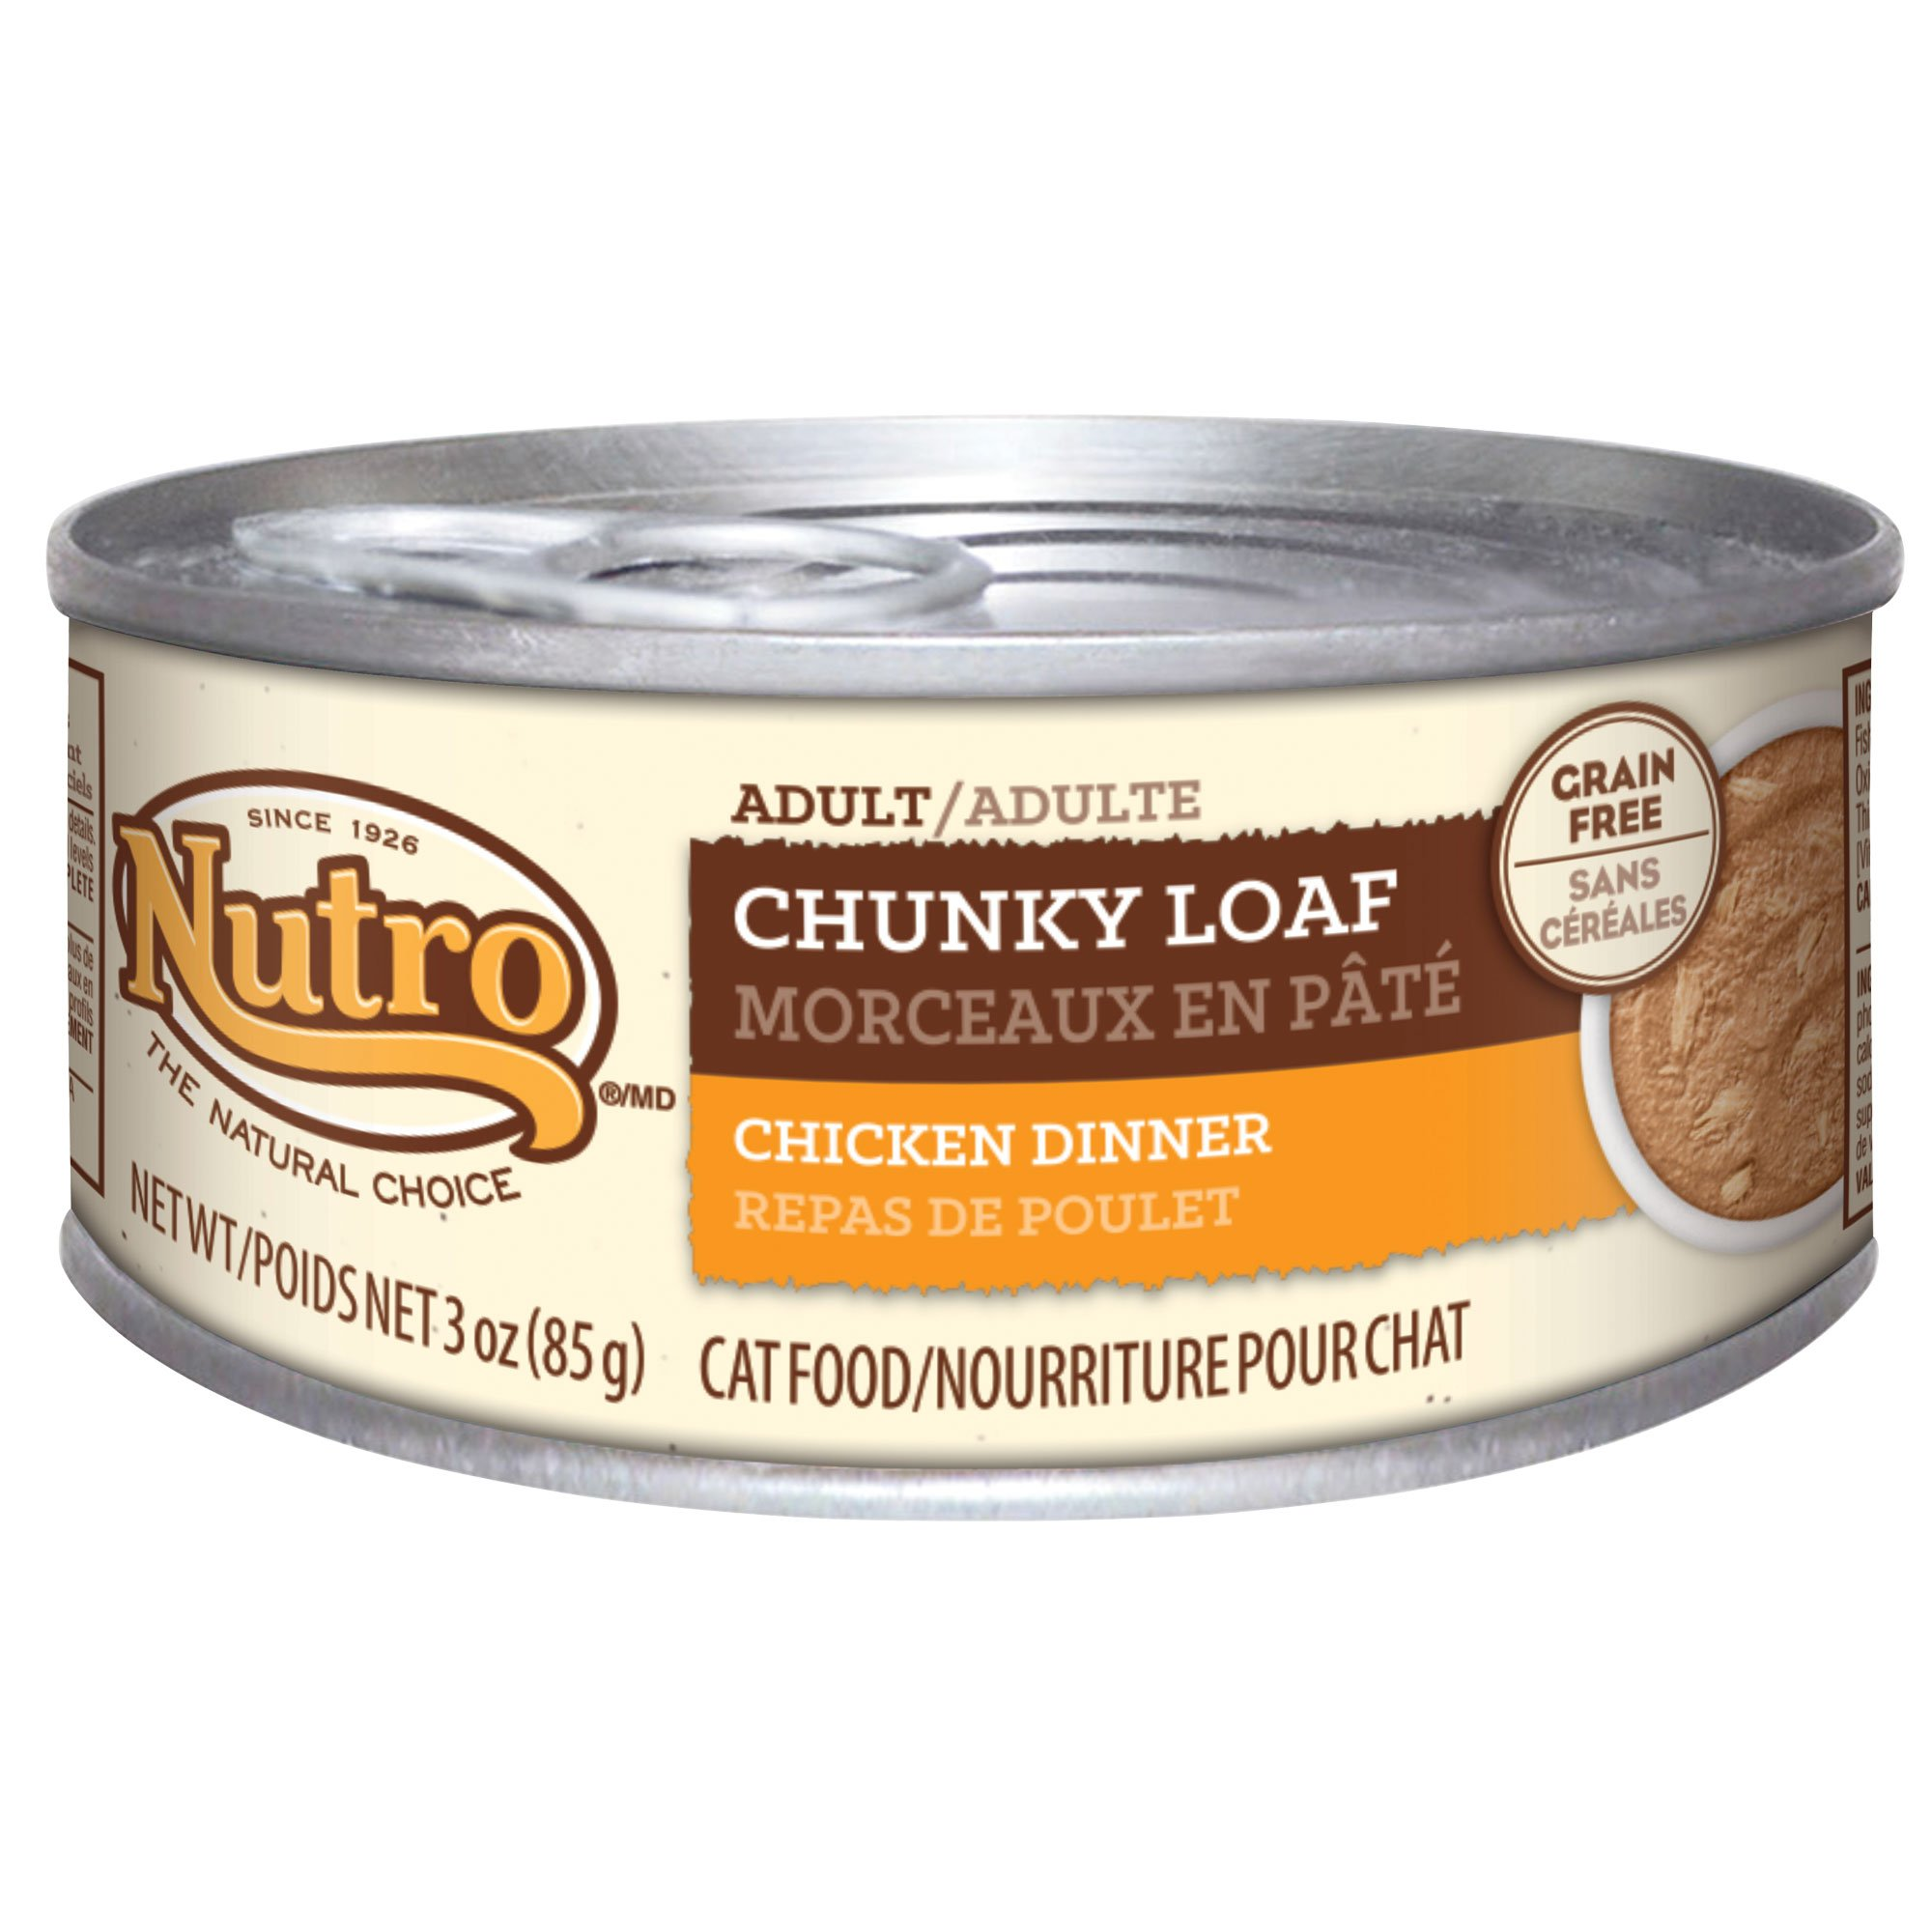 Nutro Wholesome Essentials Chunky Loaf Chicken Dinner